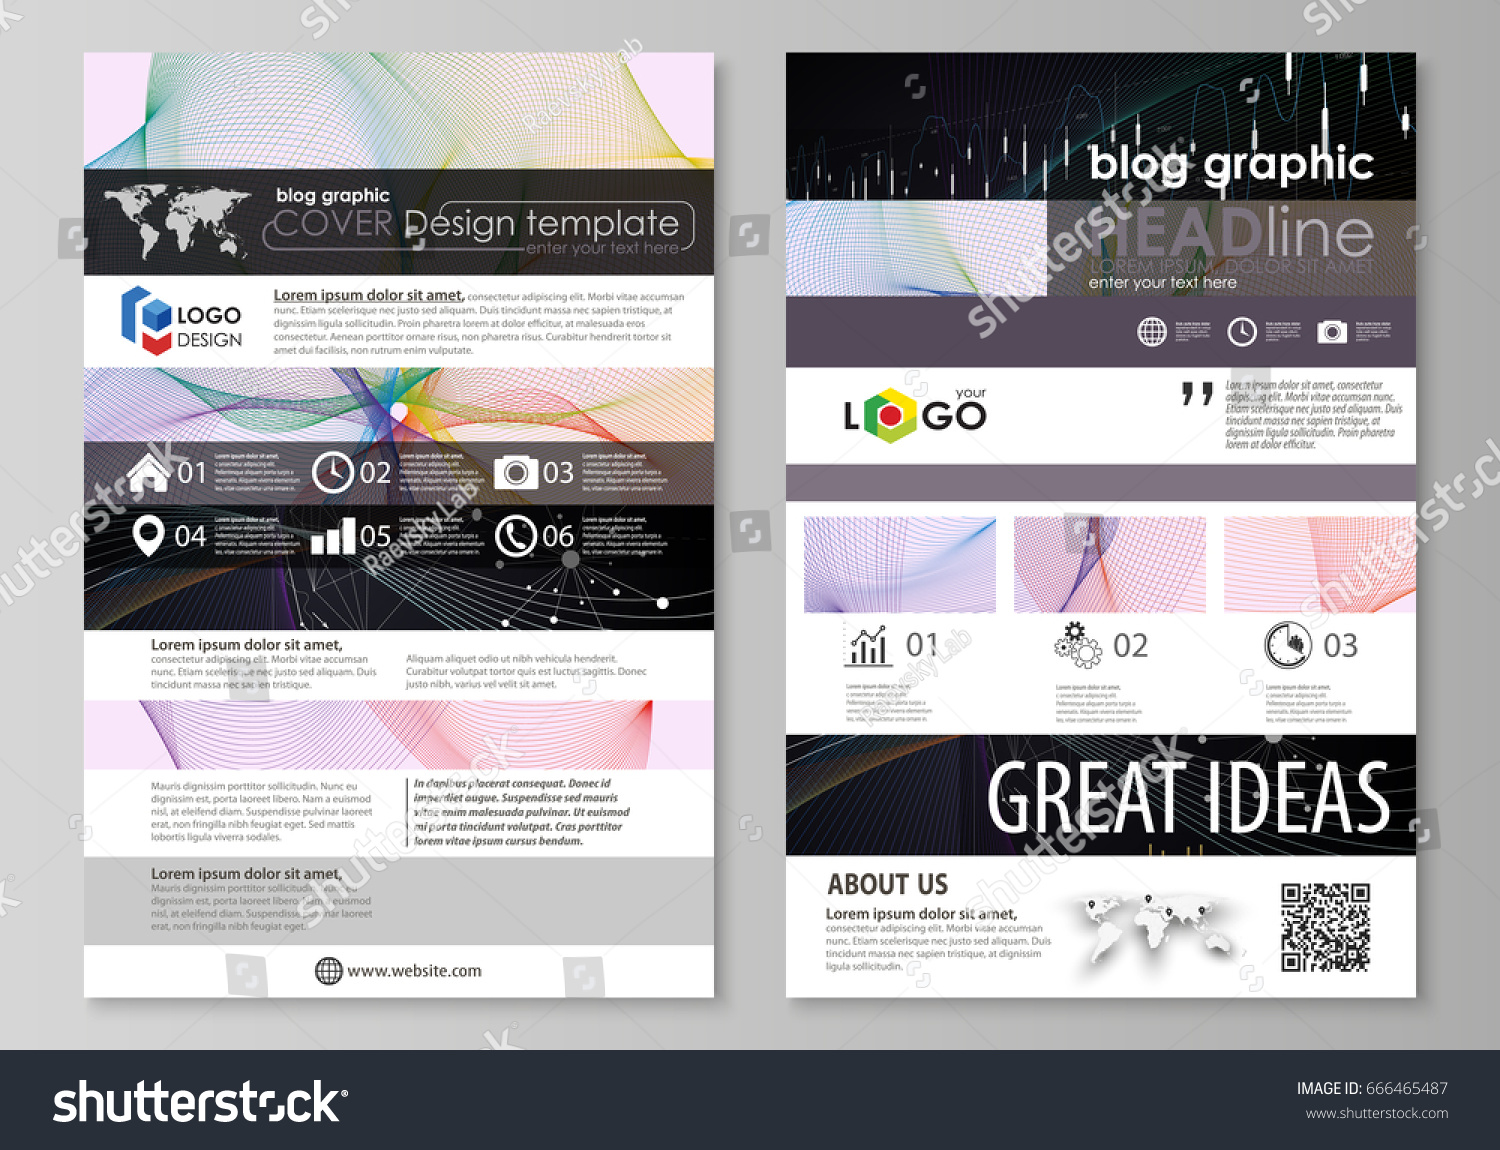 Blog Graphic Business Templates Page Website Stock Vector 666465487 ...